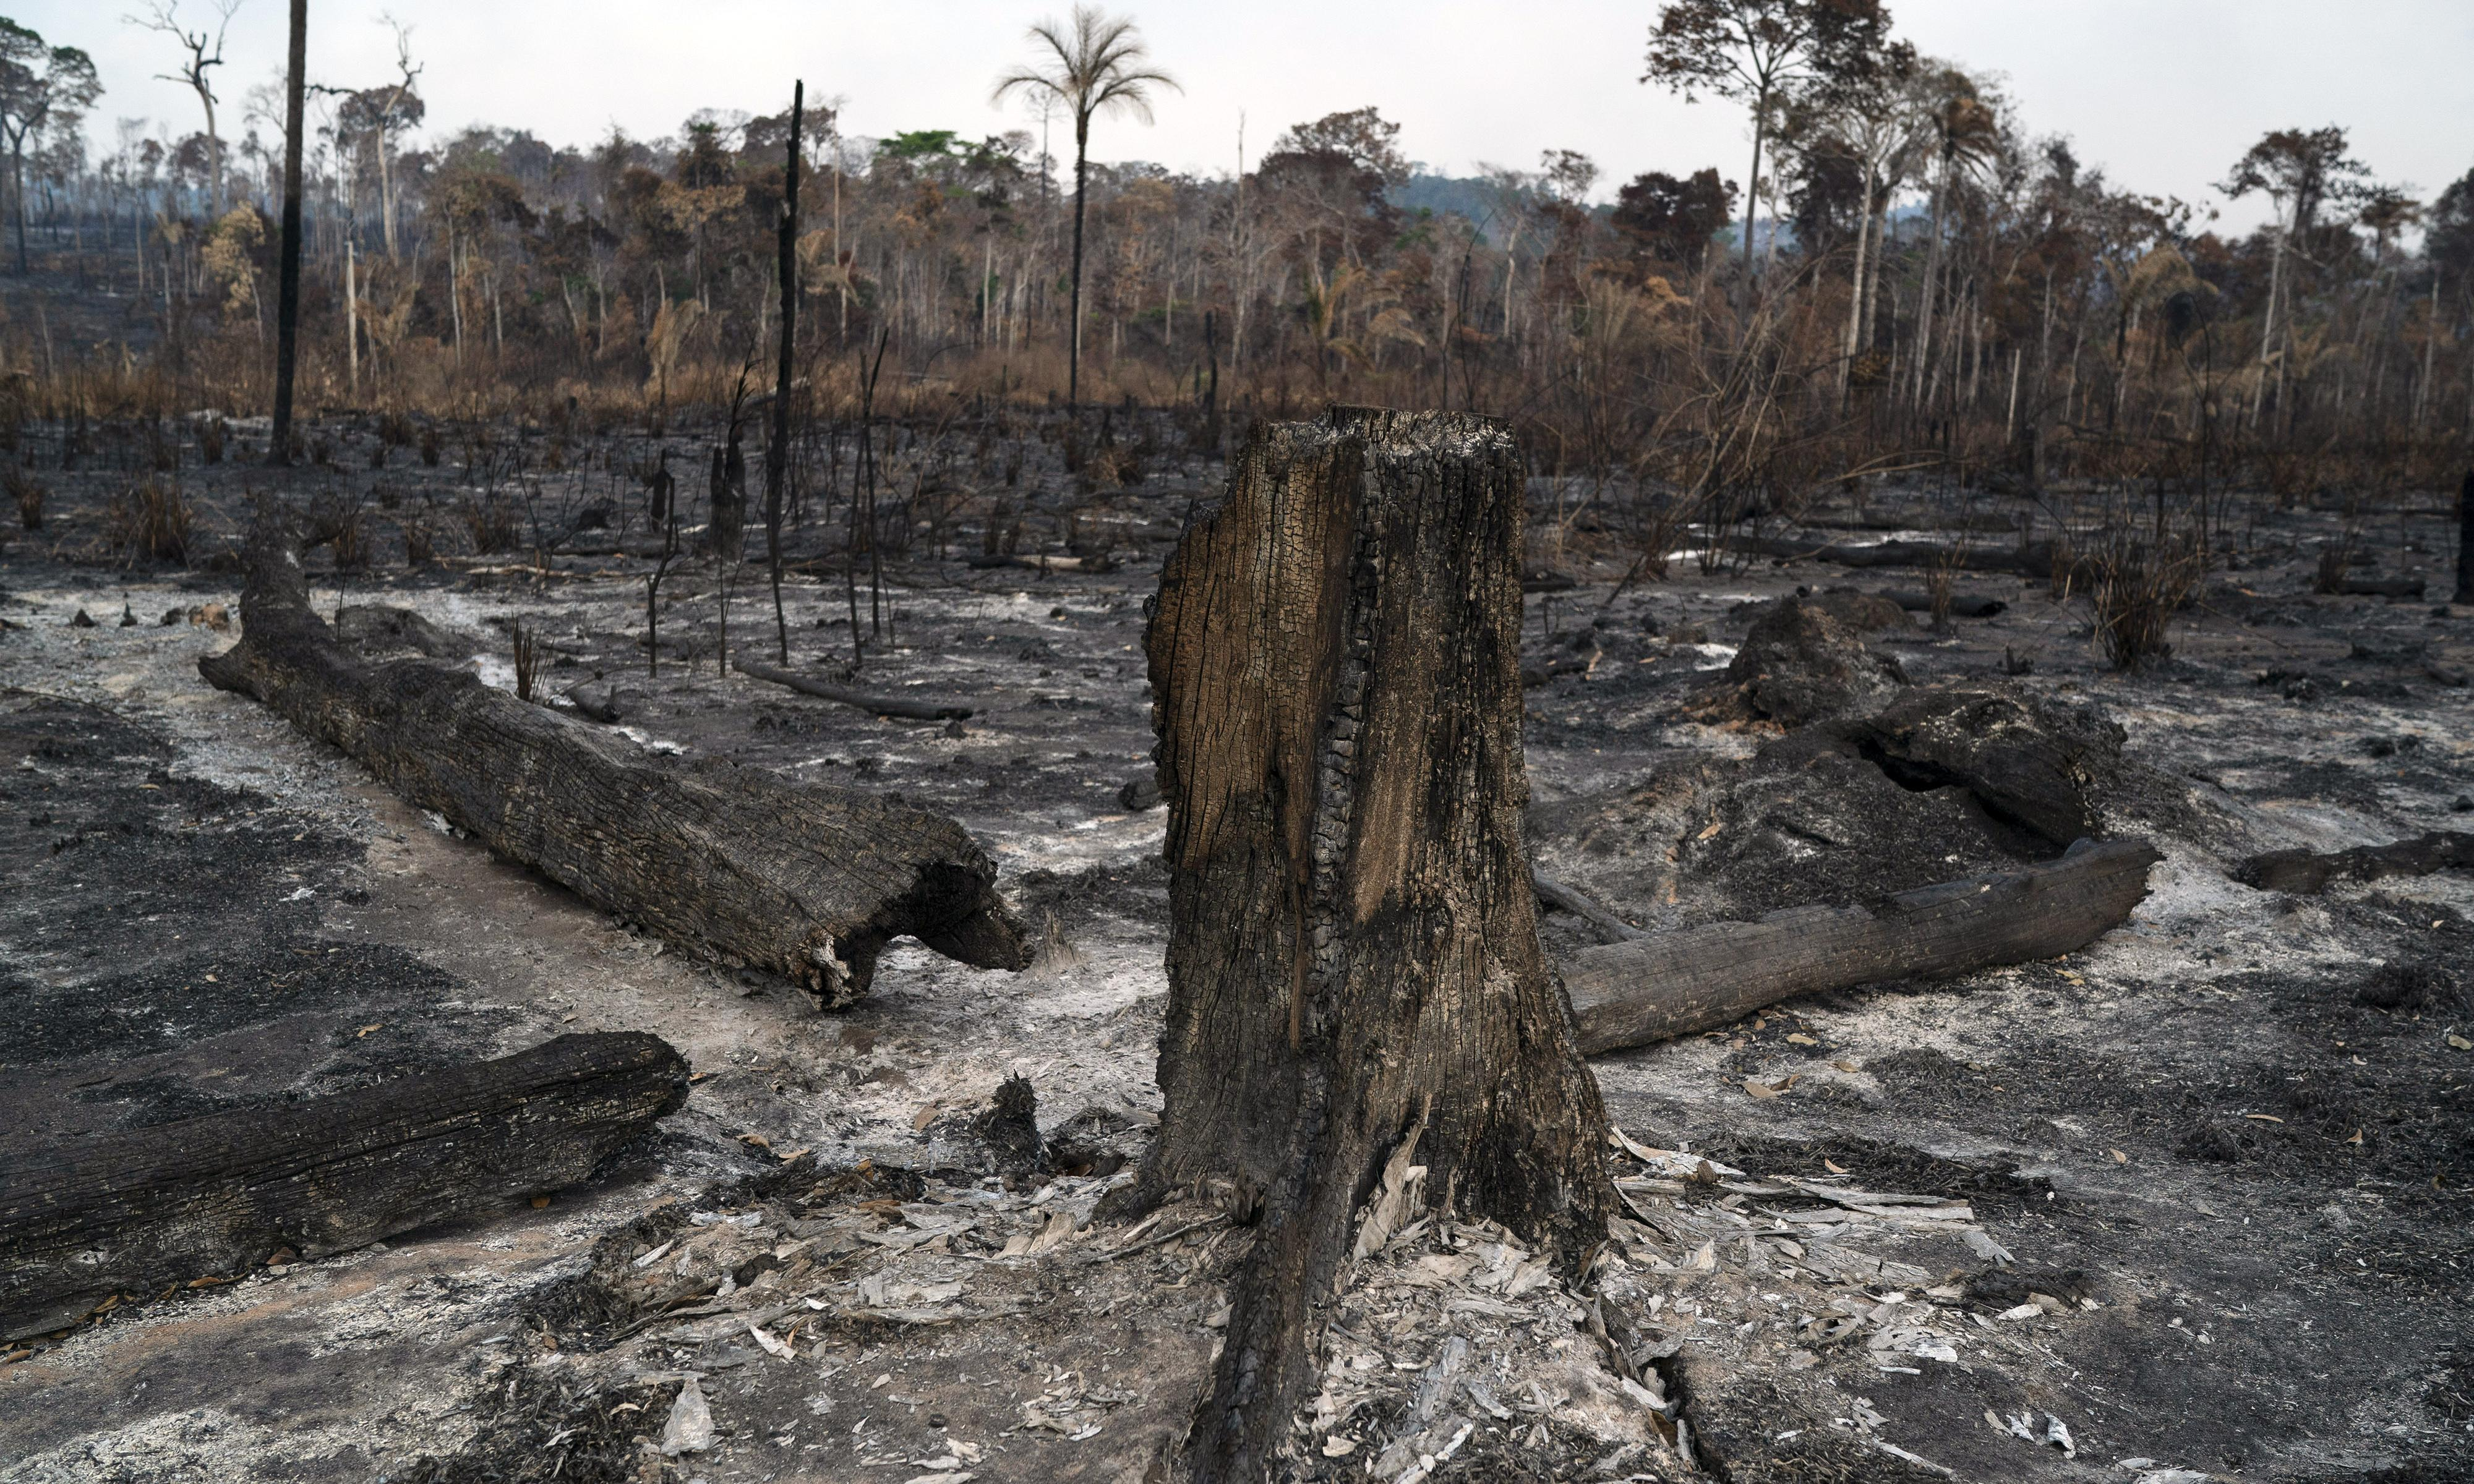 Brazilian warplanes dump water on Amazon fires as outcry mounts